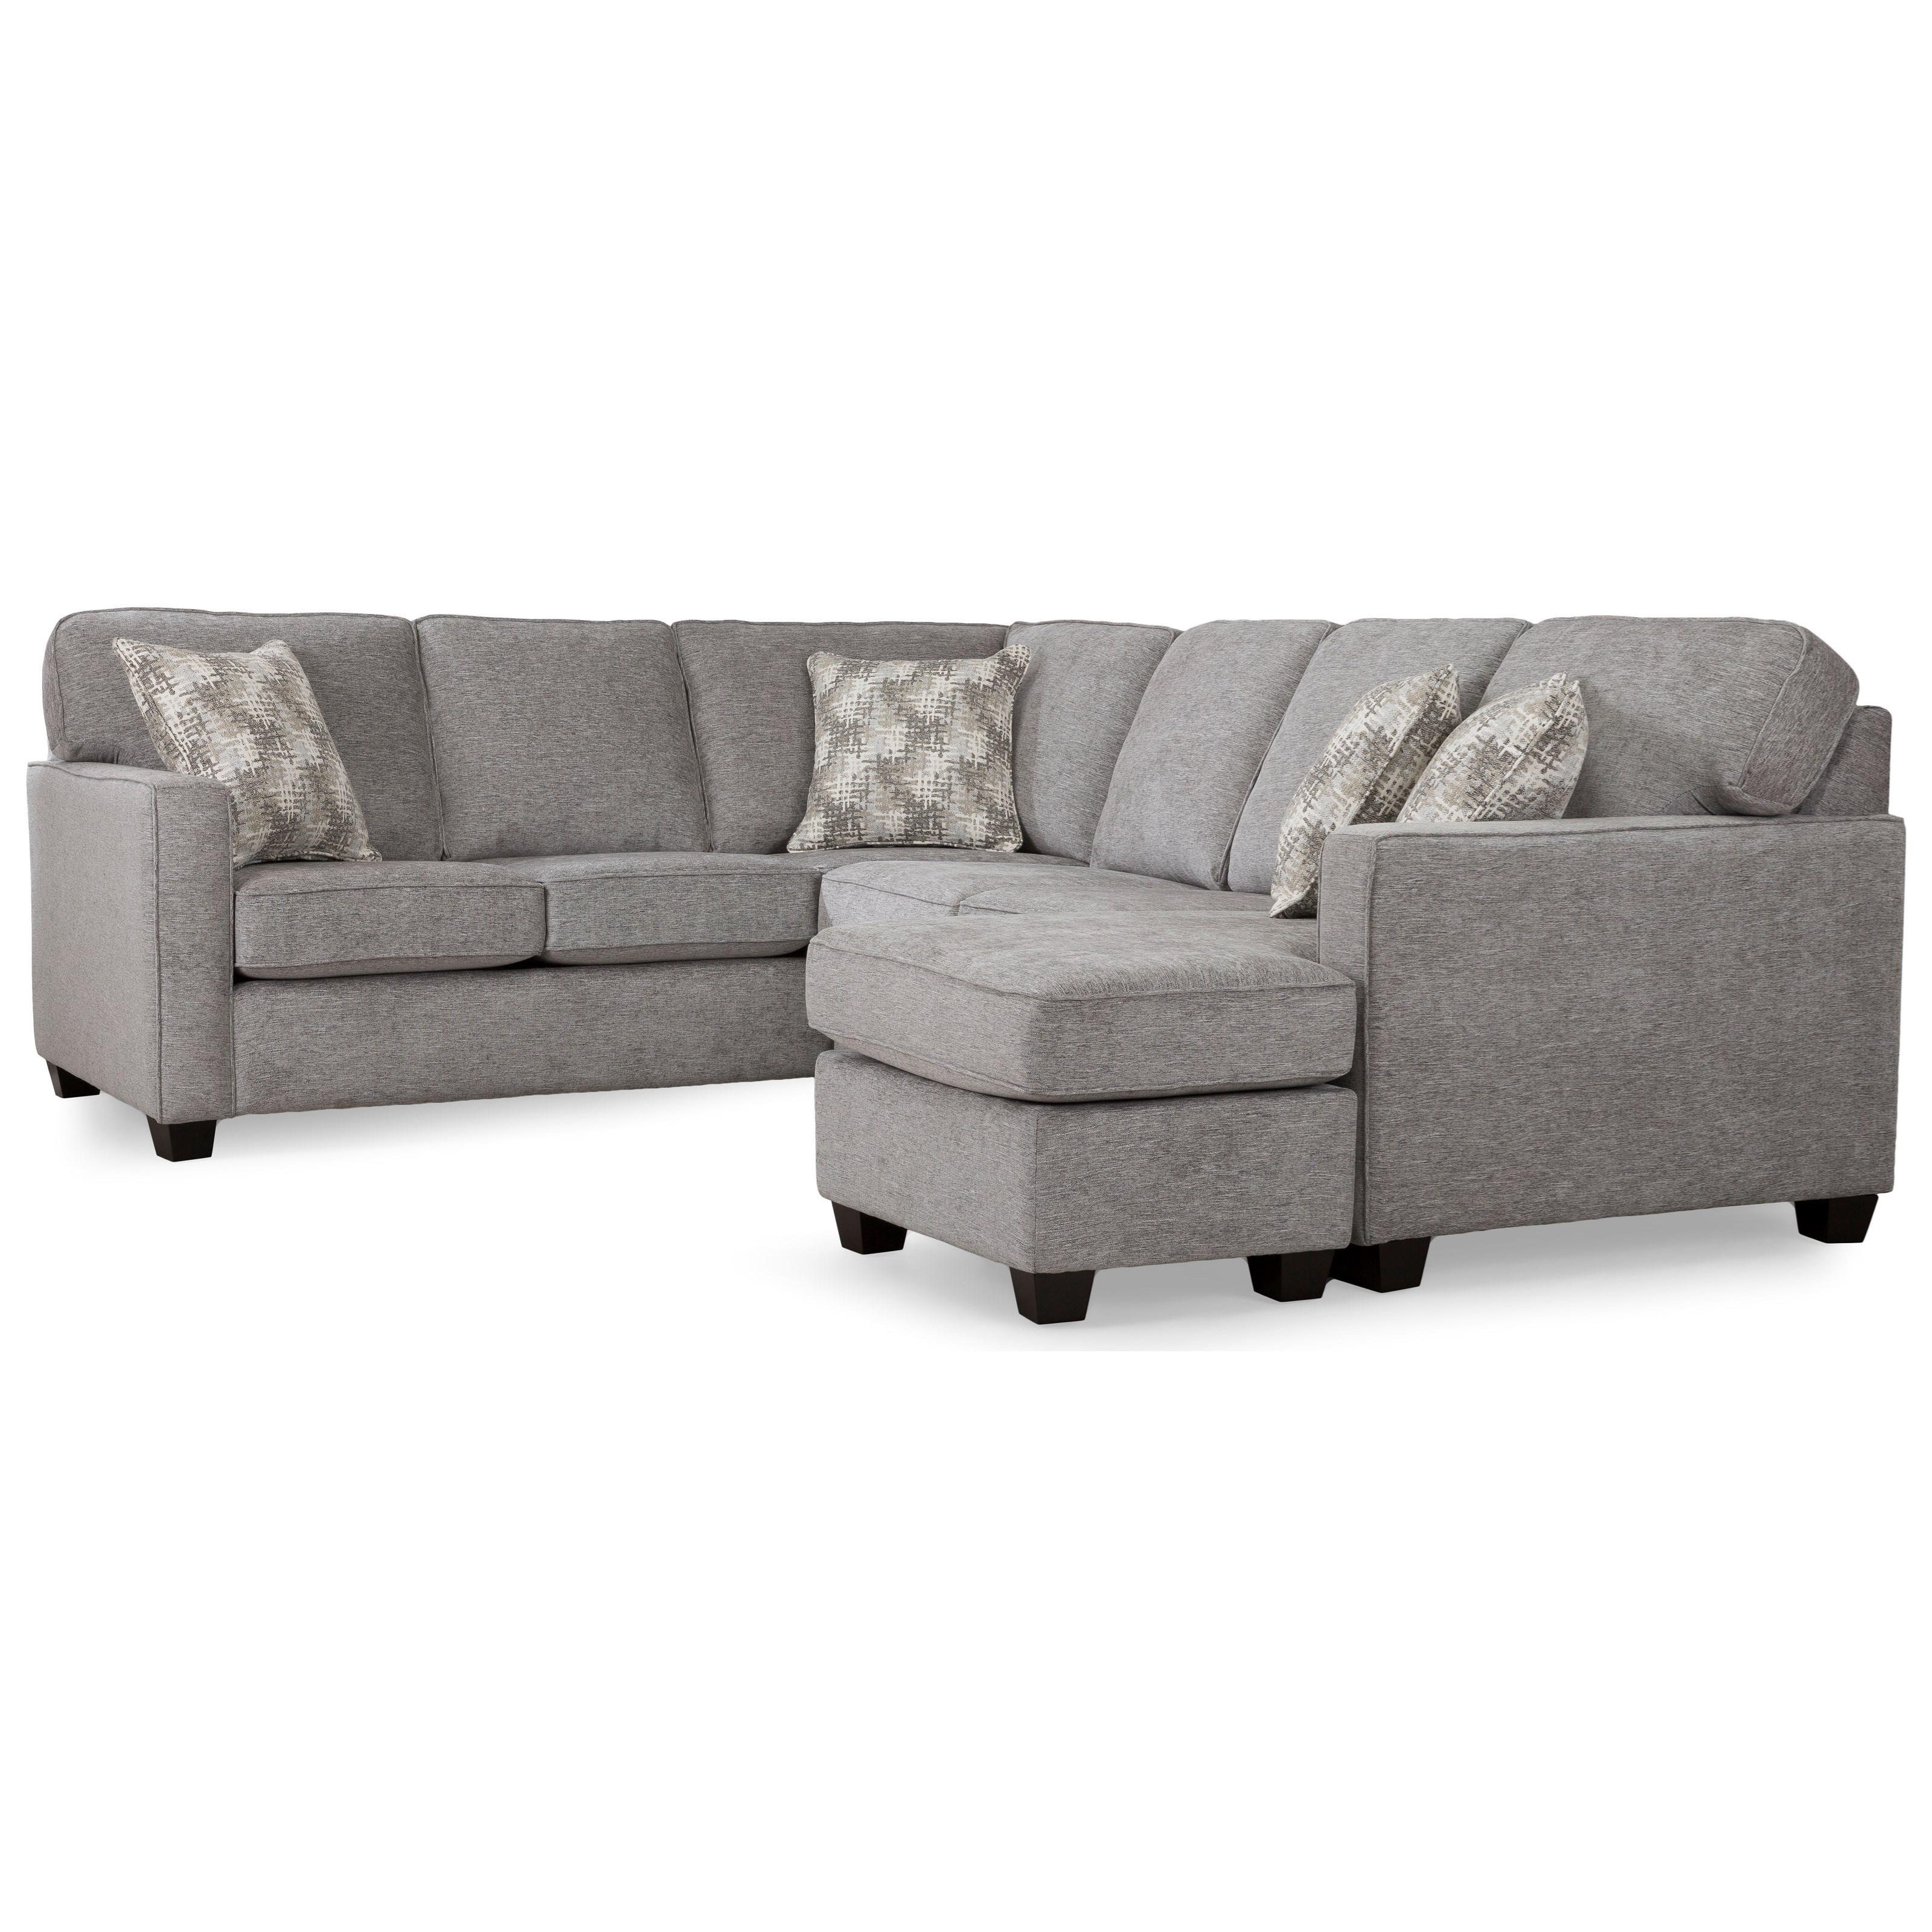 Beverley Sectional Sofa by Taelor Designs at Bennett's Furniture and Mattresses